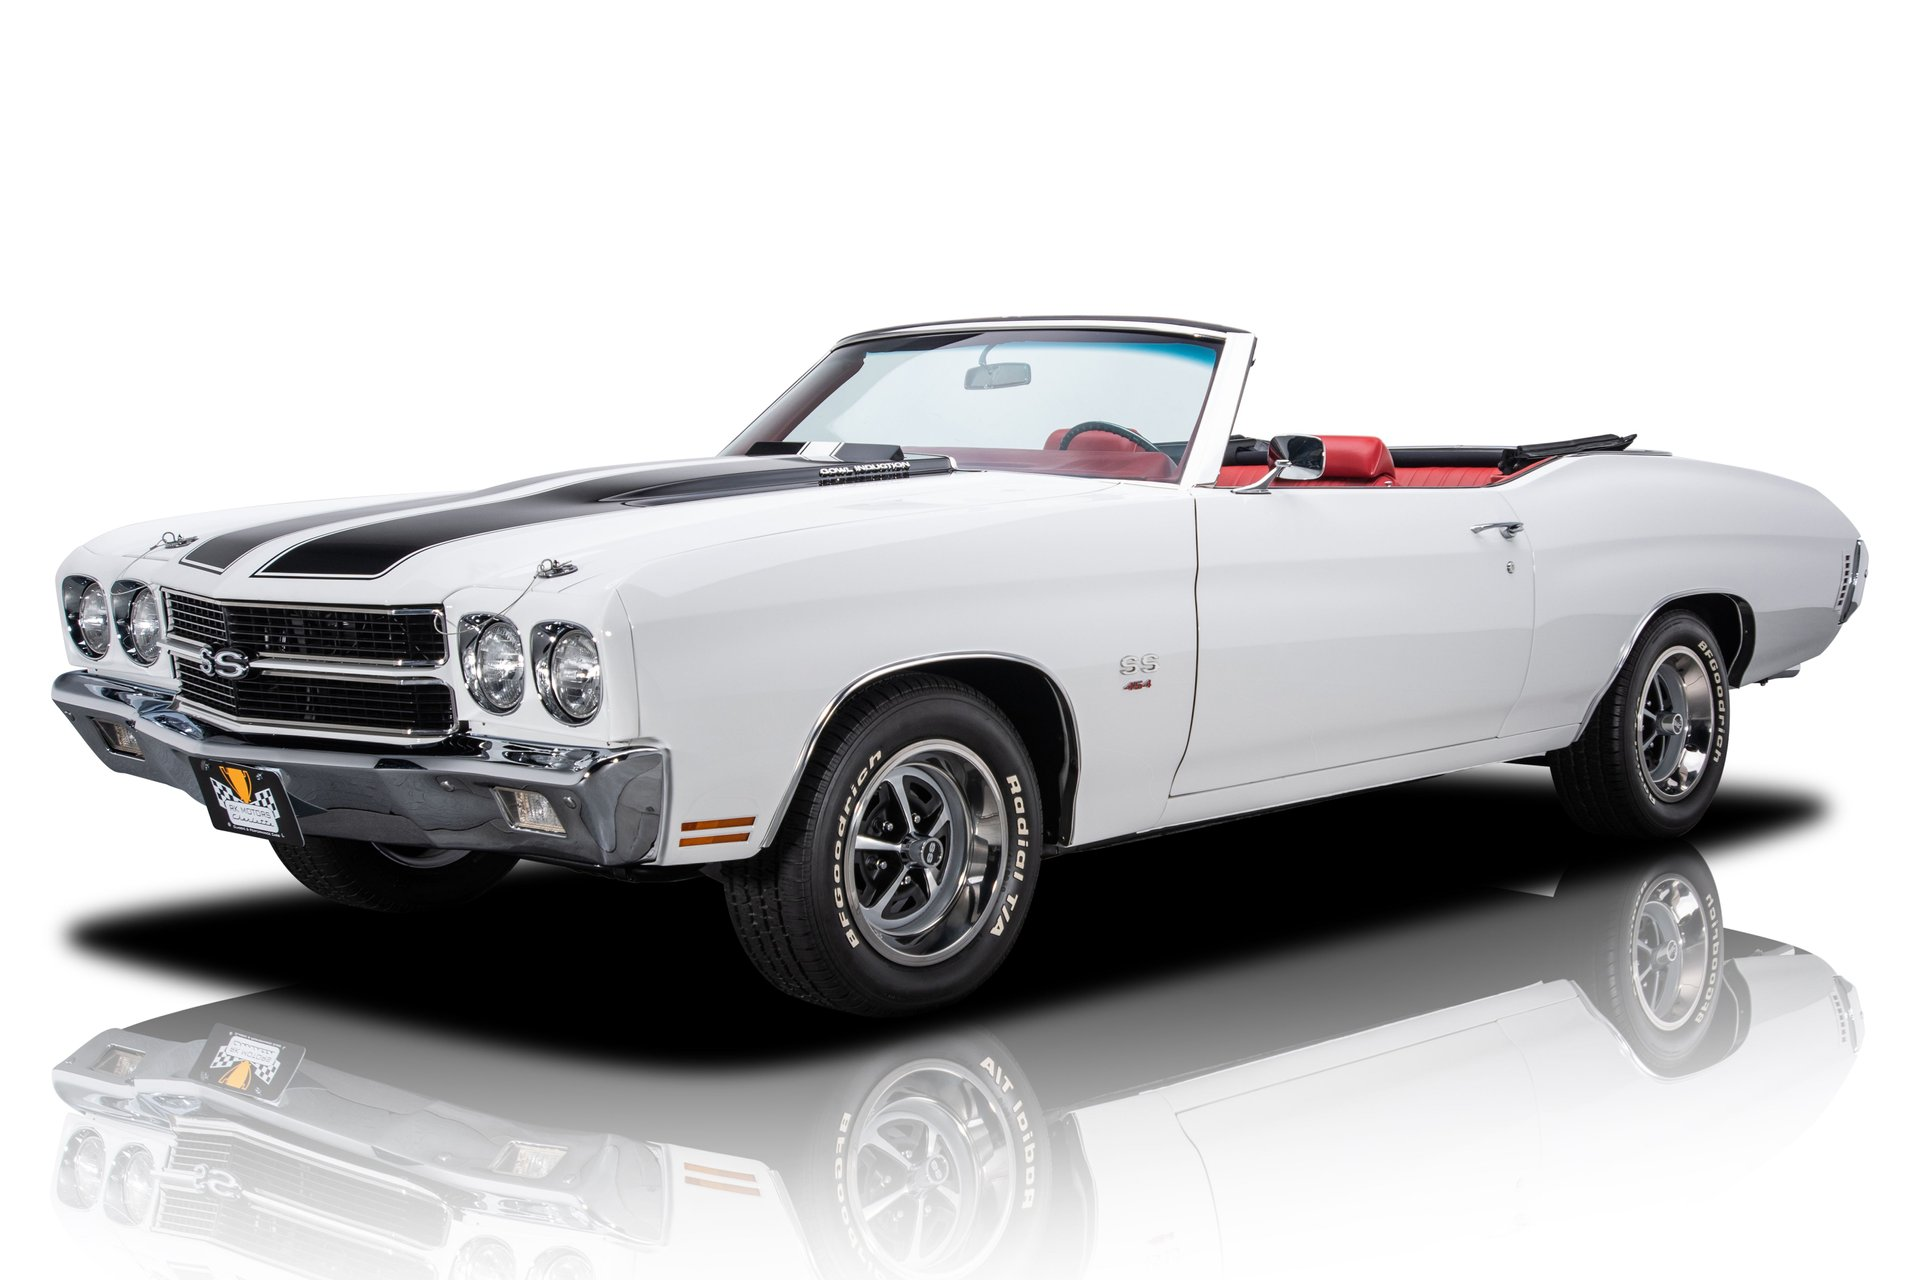 Ss chevelle 1969 clipart banner black and white stock 1970 Chevrolet Chevelle SS Convertible for sale #176507 ... banner black and white stock